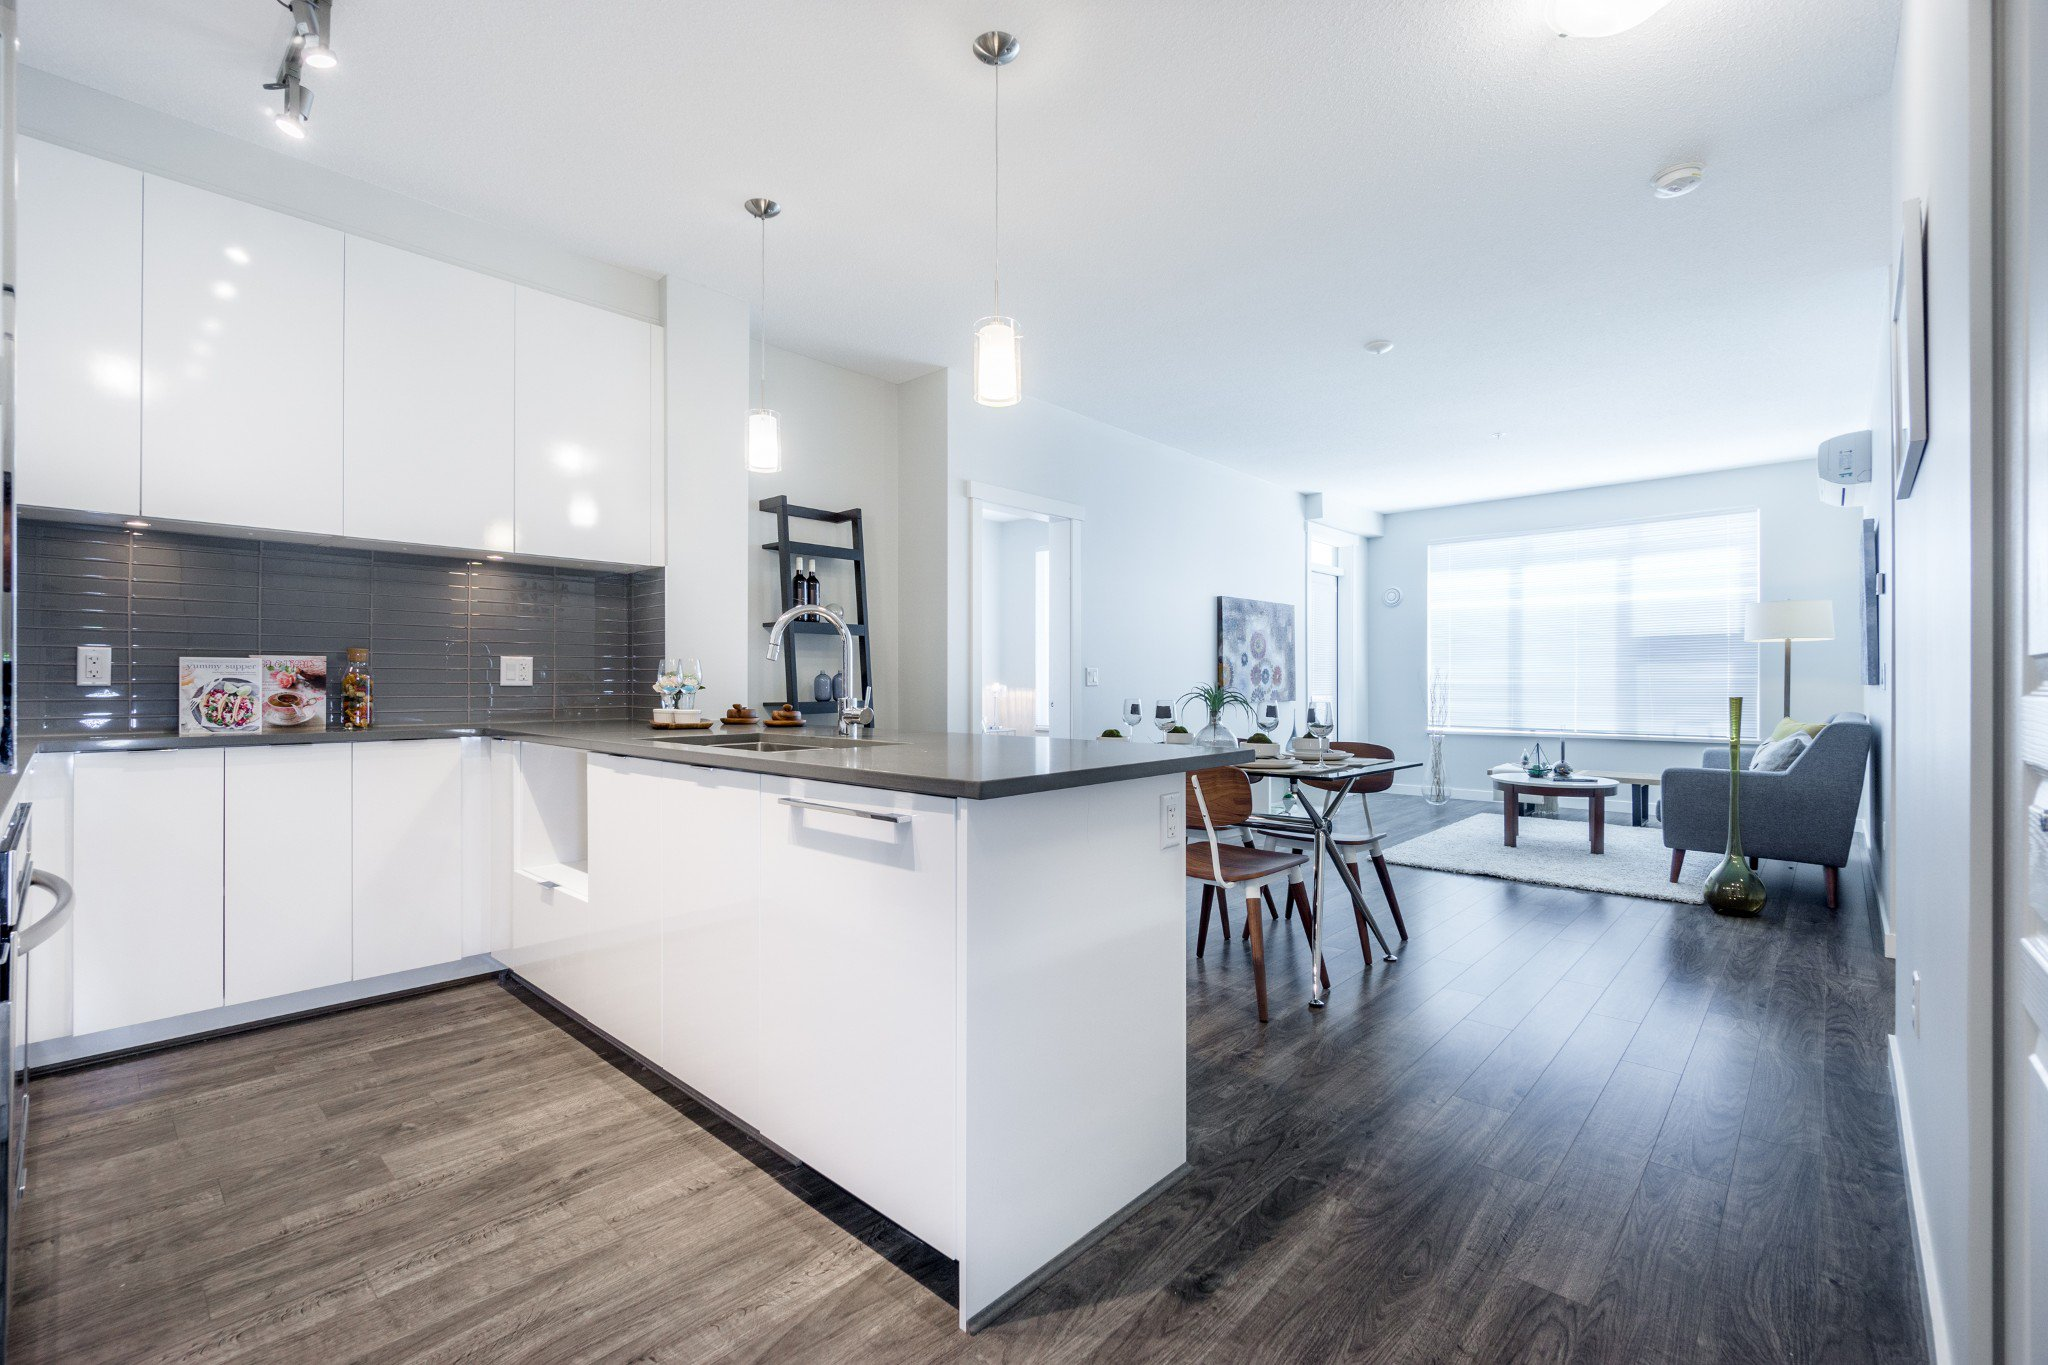 """Photo 6: Photos: 402 9311 ALEXANDRA Road in Richmond: West Cambie Condo for sale in """"ALEXANDRA COURT"""" : MLS®# R2266613"""